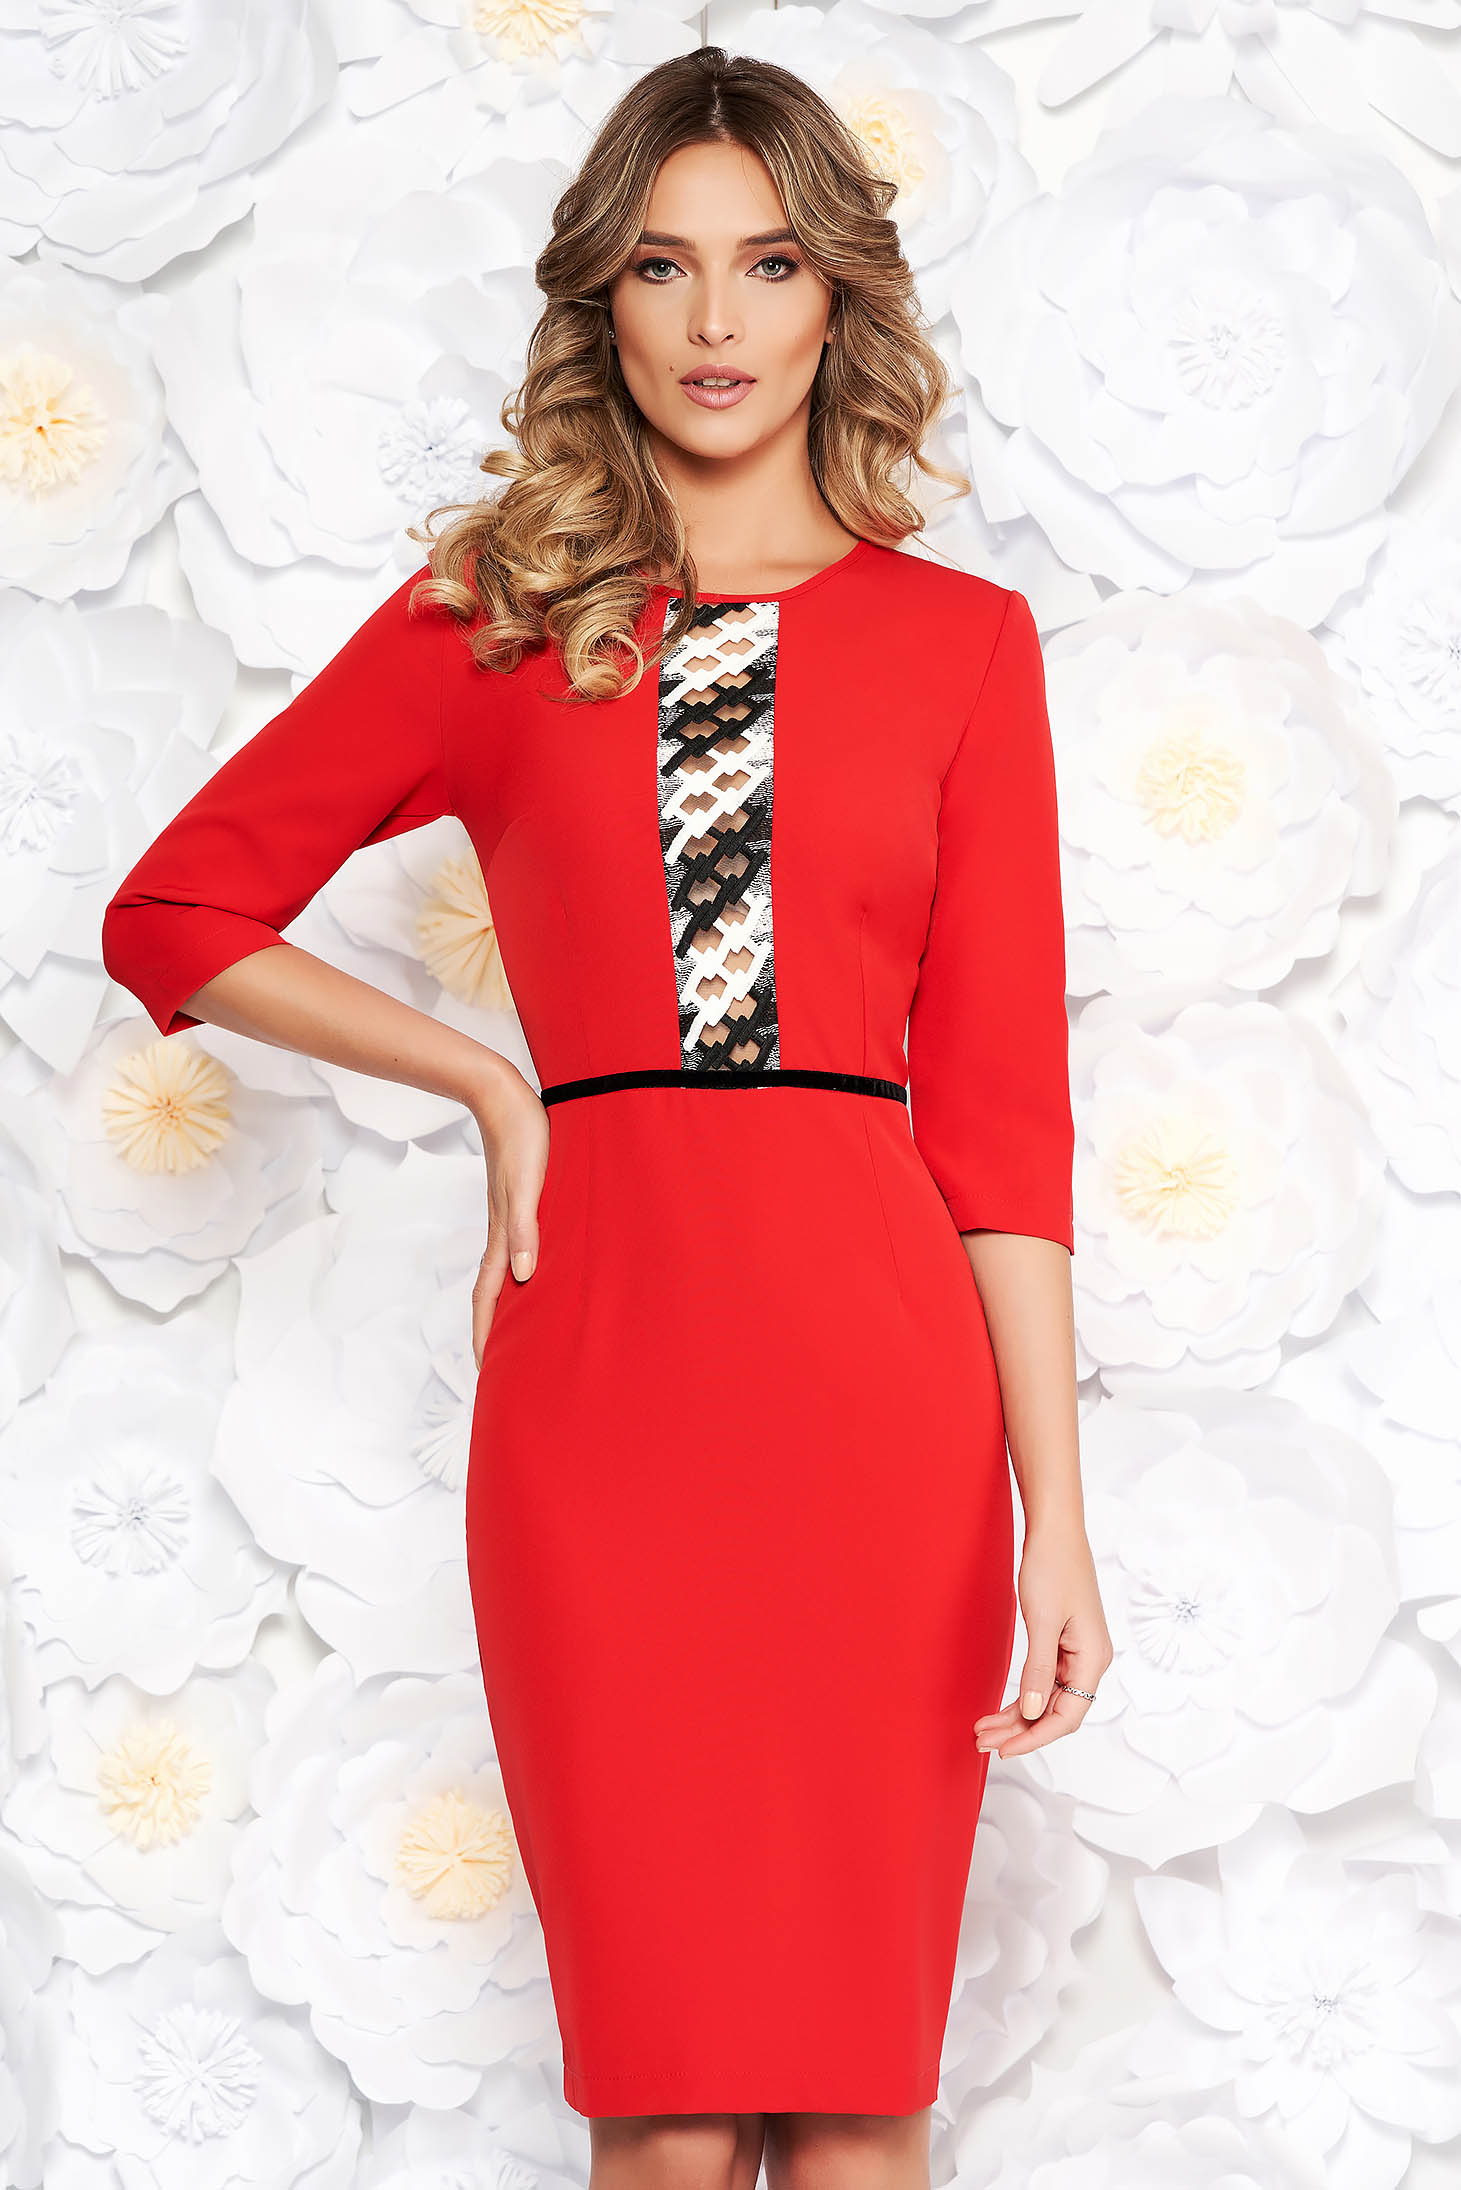 StarShinerS red elegant pencil dress 3/4 sleeve slightly elastic fabric front embroidery